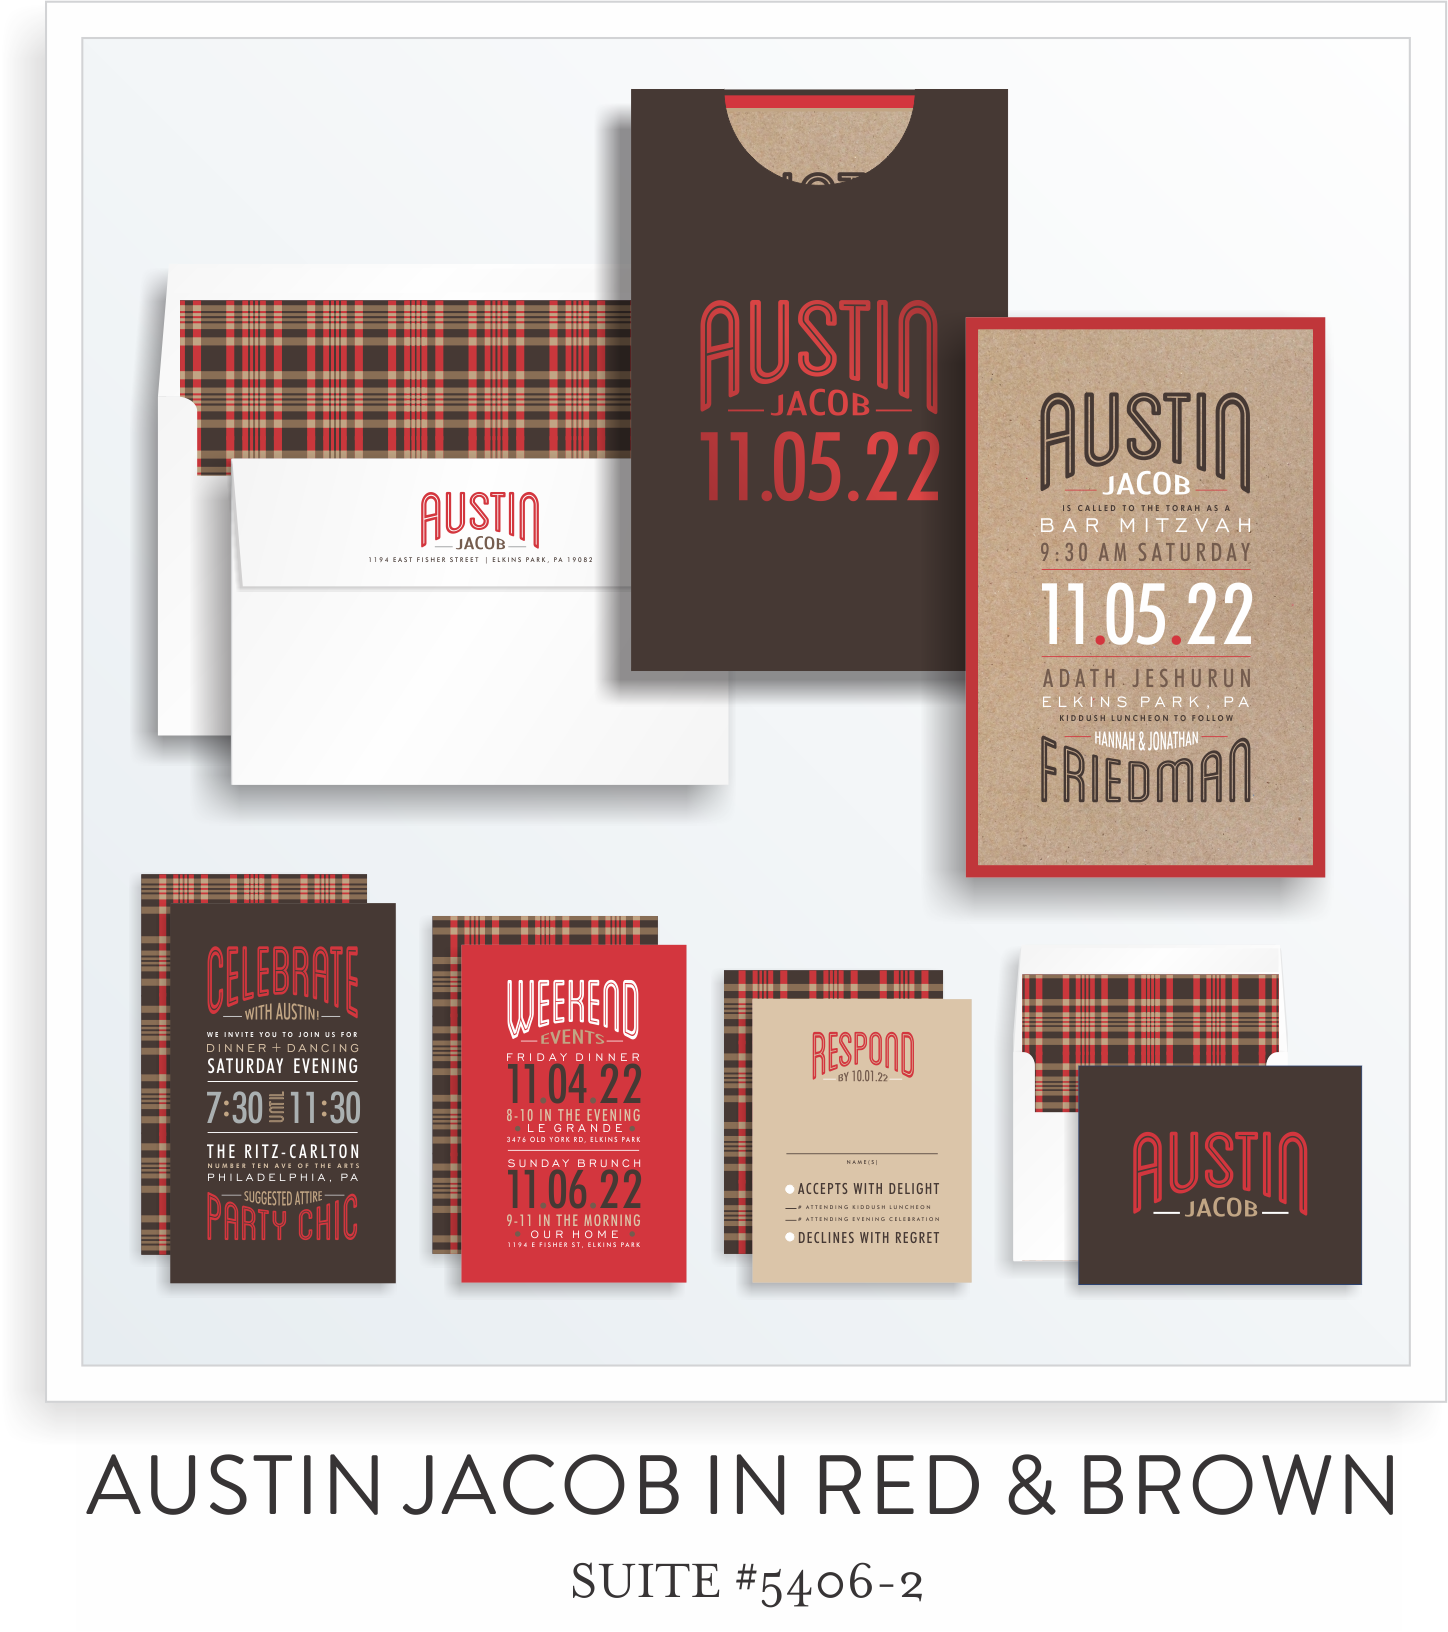 5406-2 AUSTIN JACOB IN RED & BROWN SUITE THUMB.png